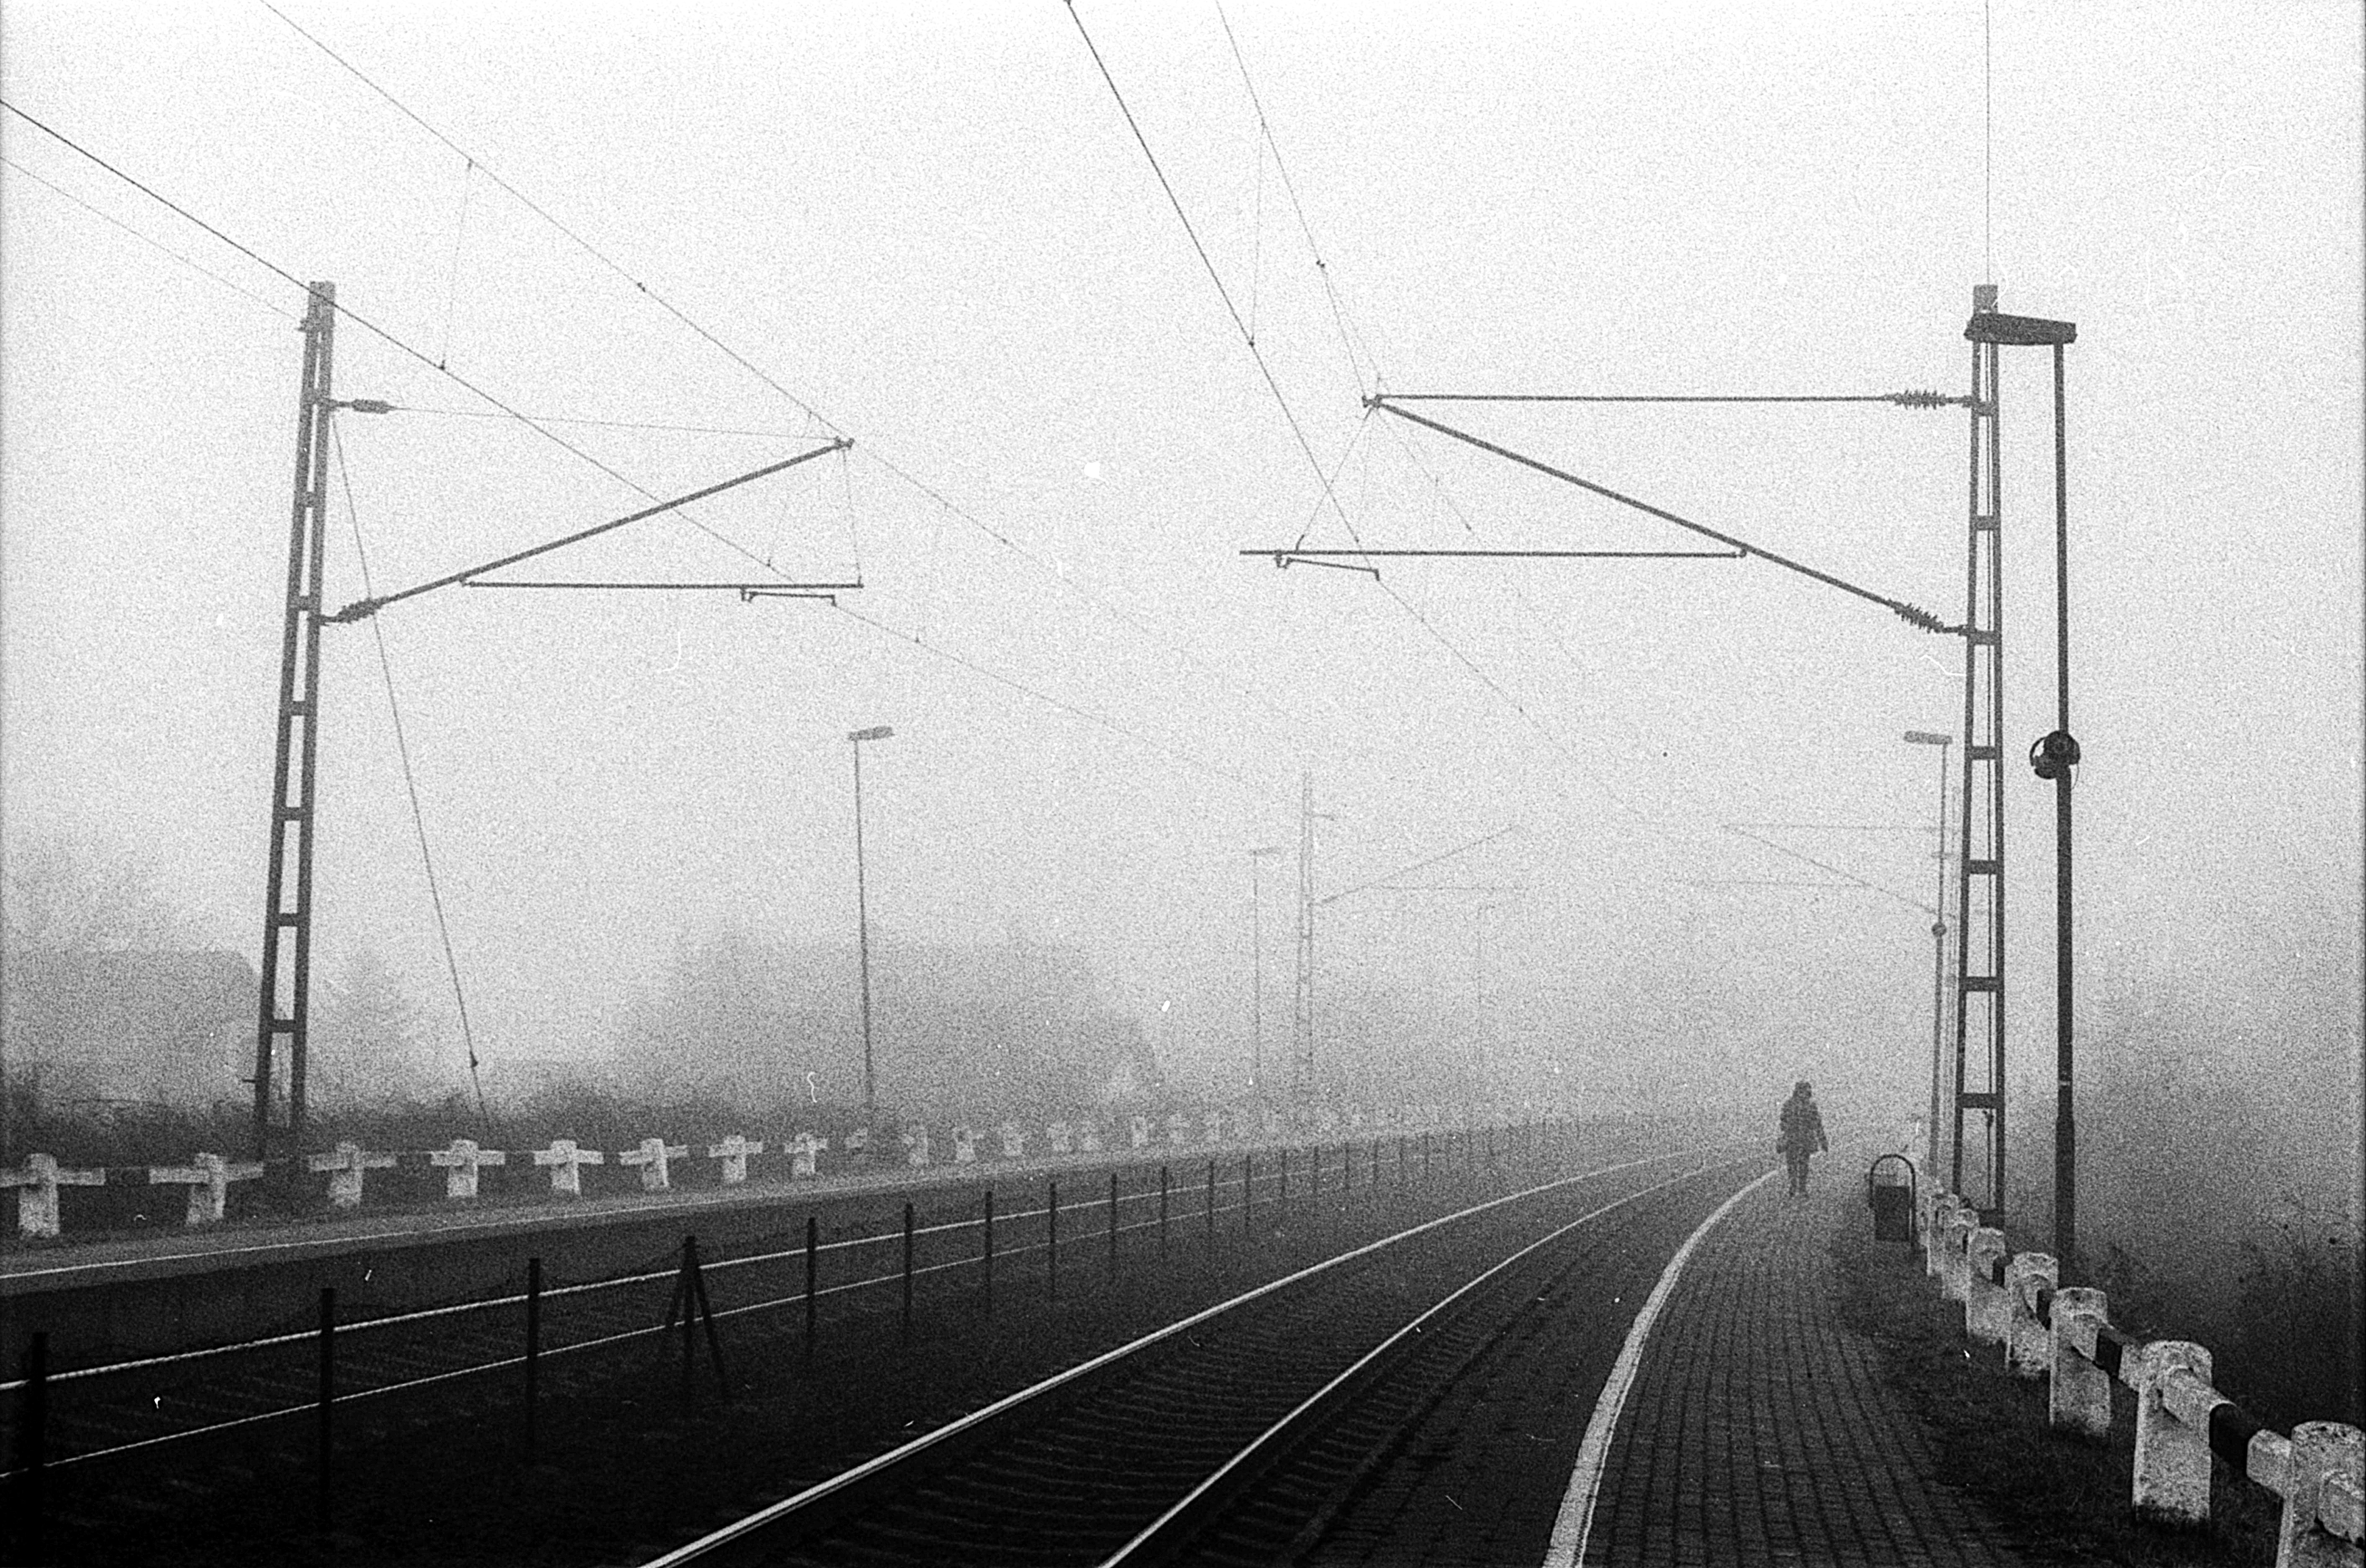 Walk in the fog, 1.4, Blackandwhite, Cable, Film, HQ Photo